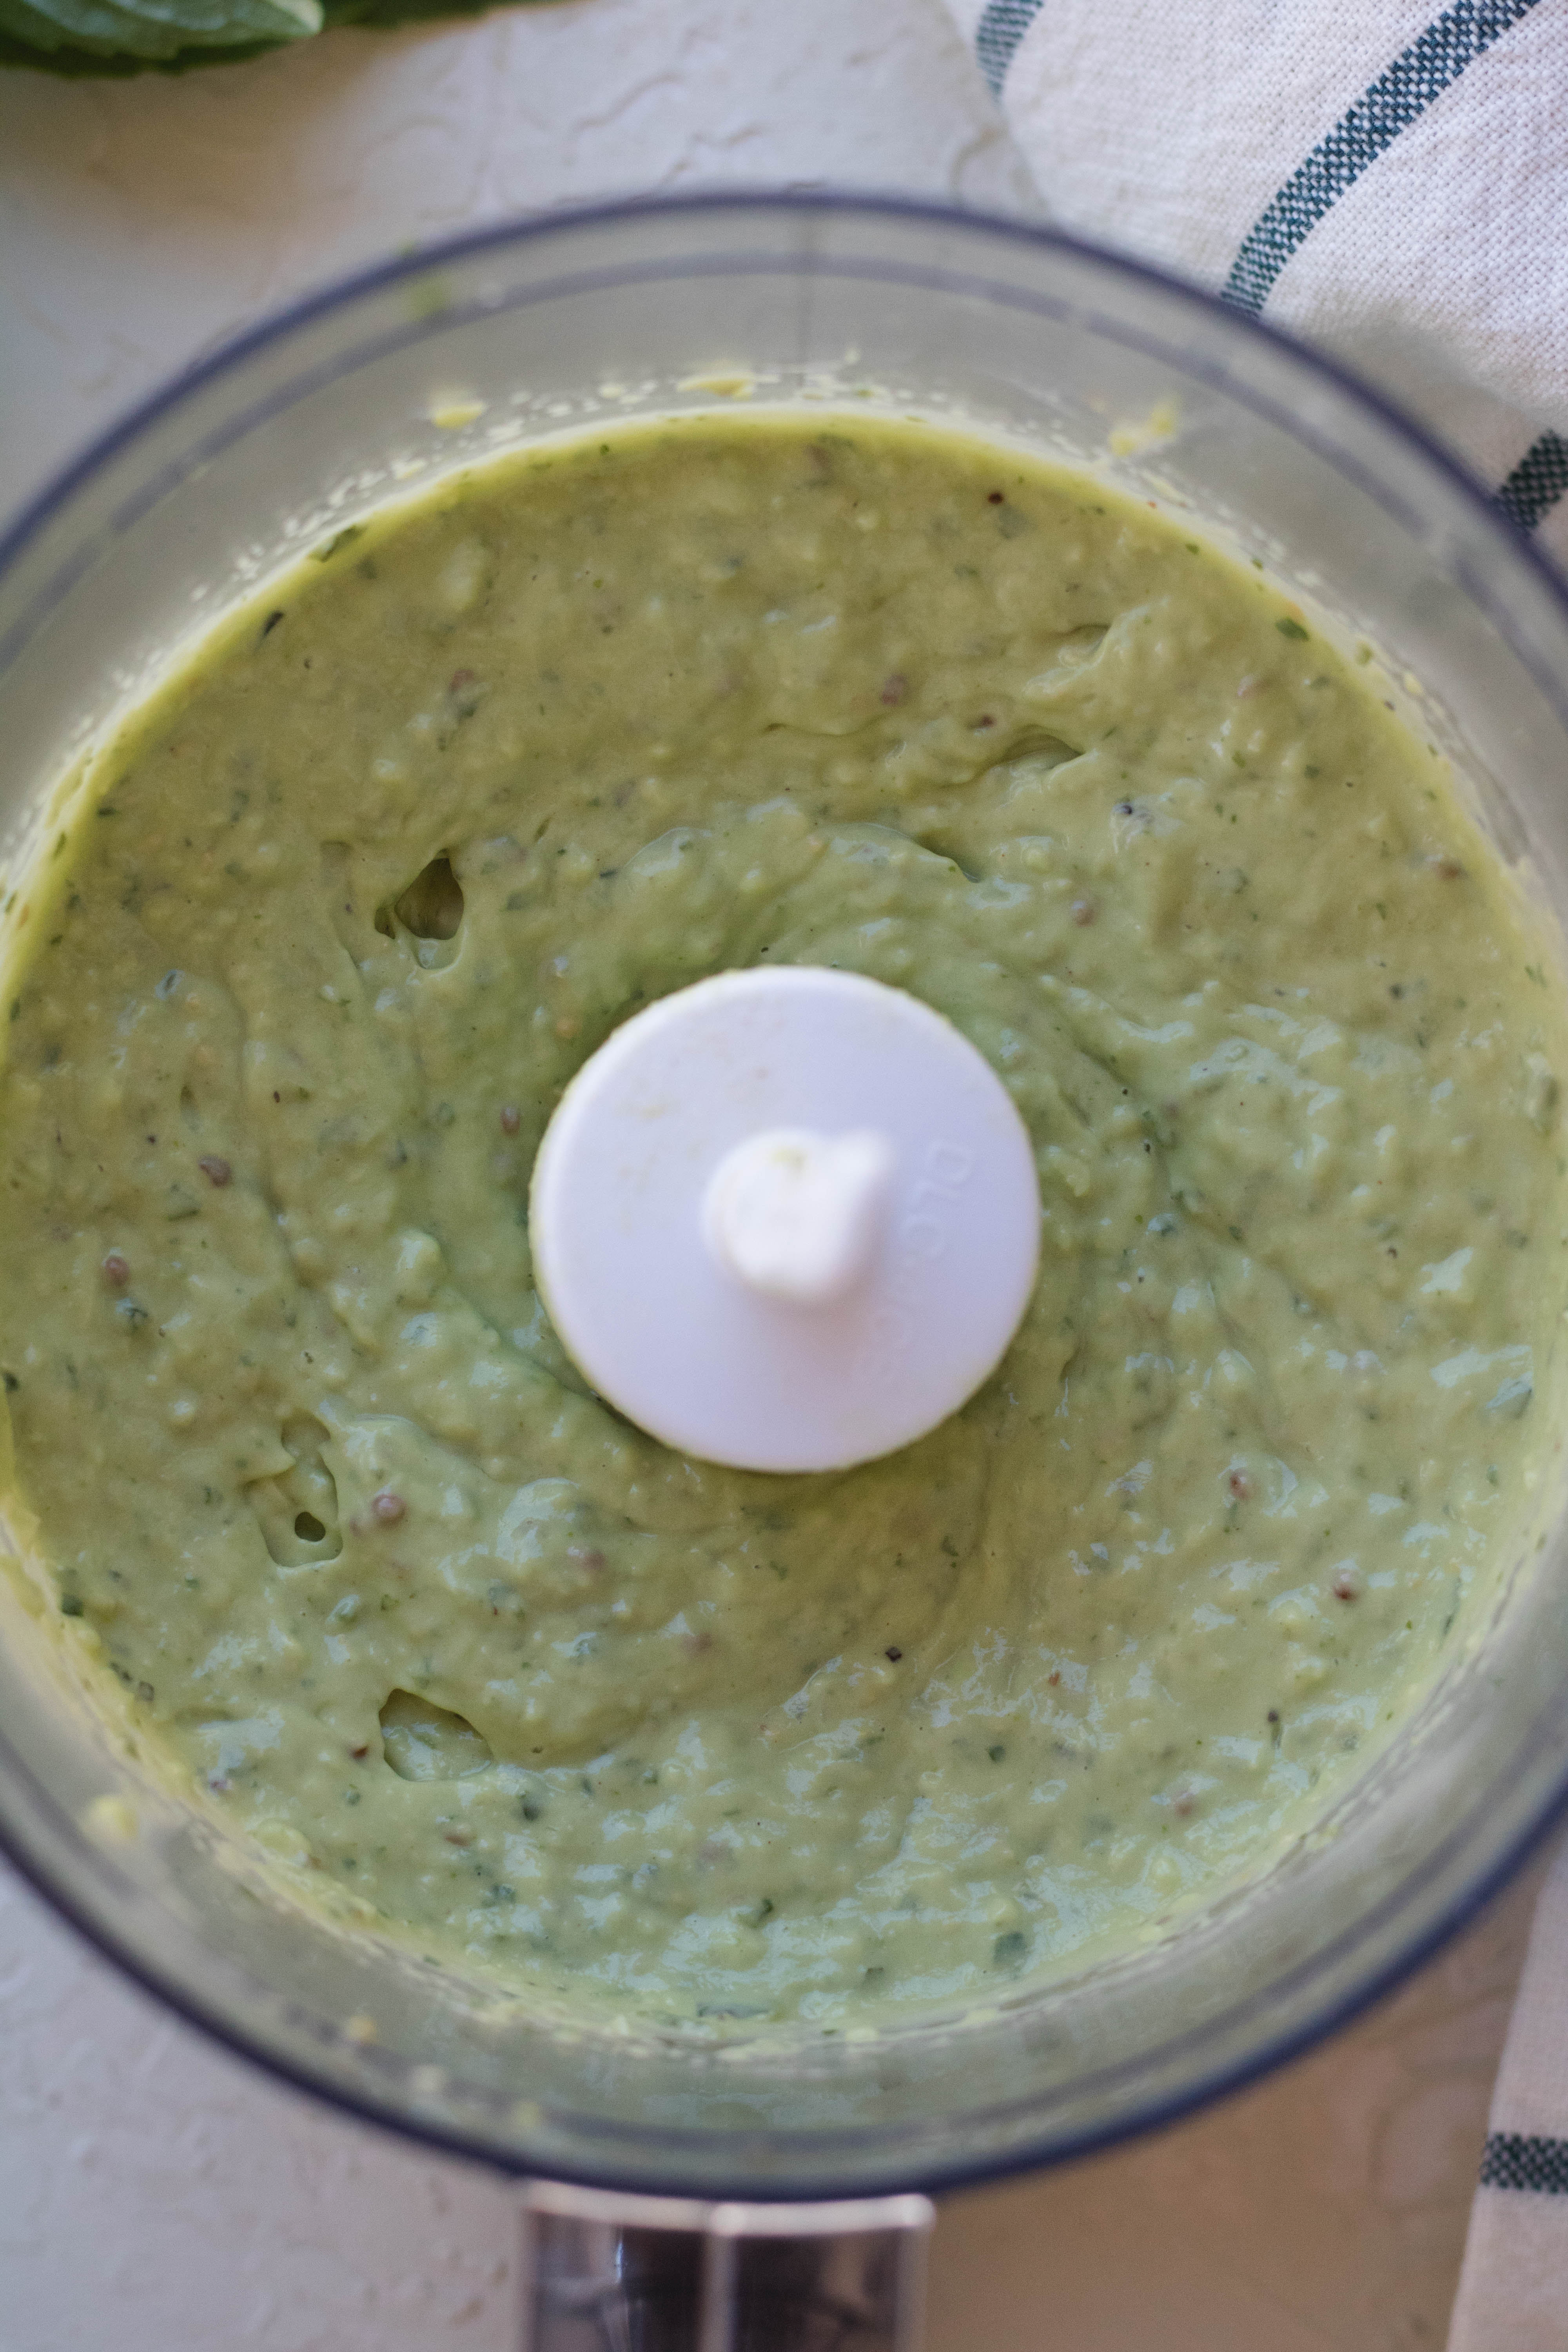 Blended avocado pasta sauce